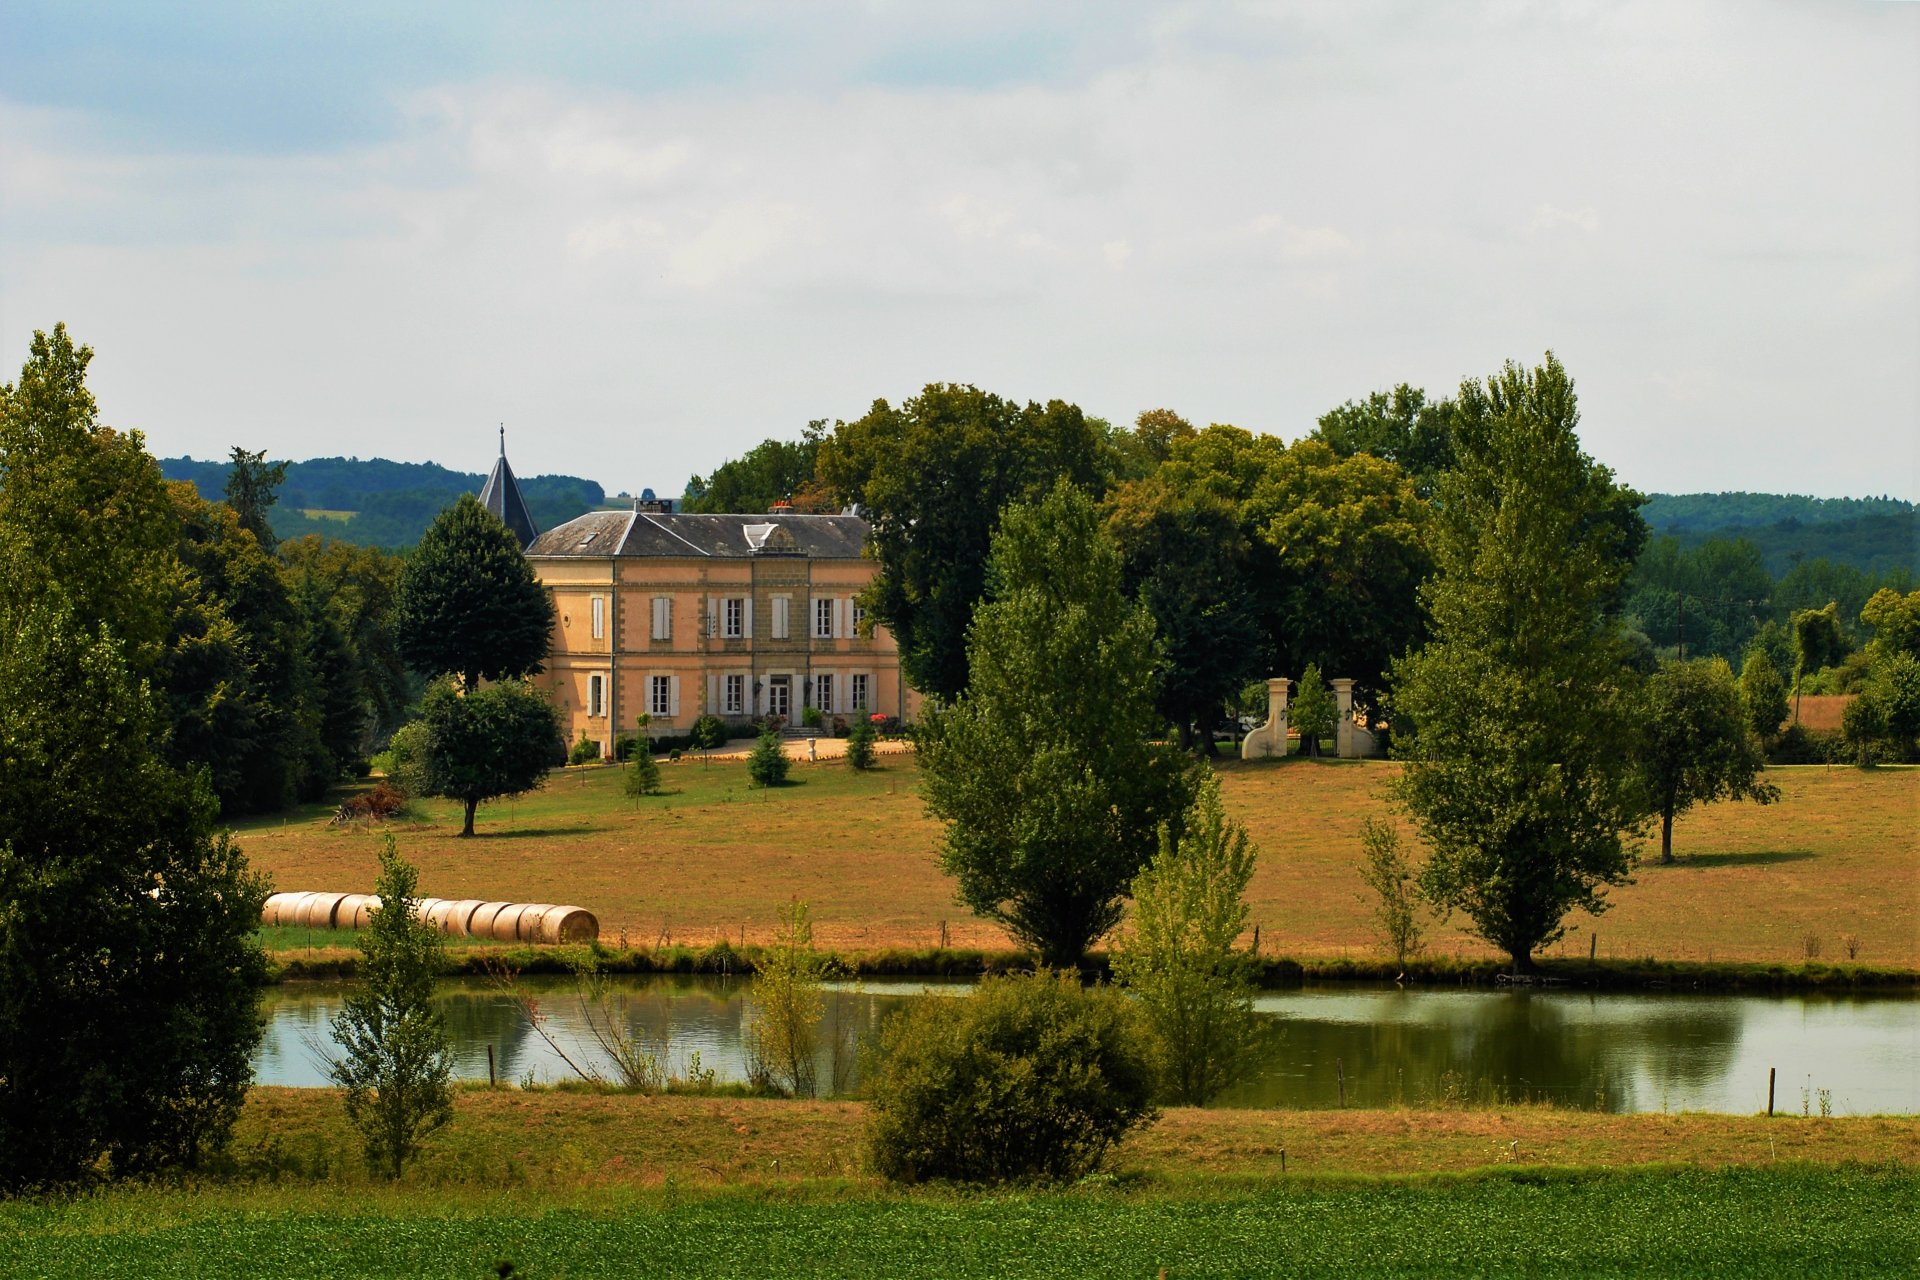 Beautiful 18th century castle in a beautiful park with trees and a pond